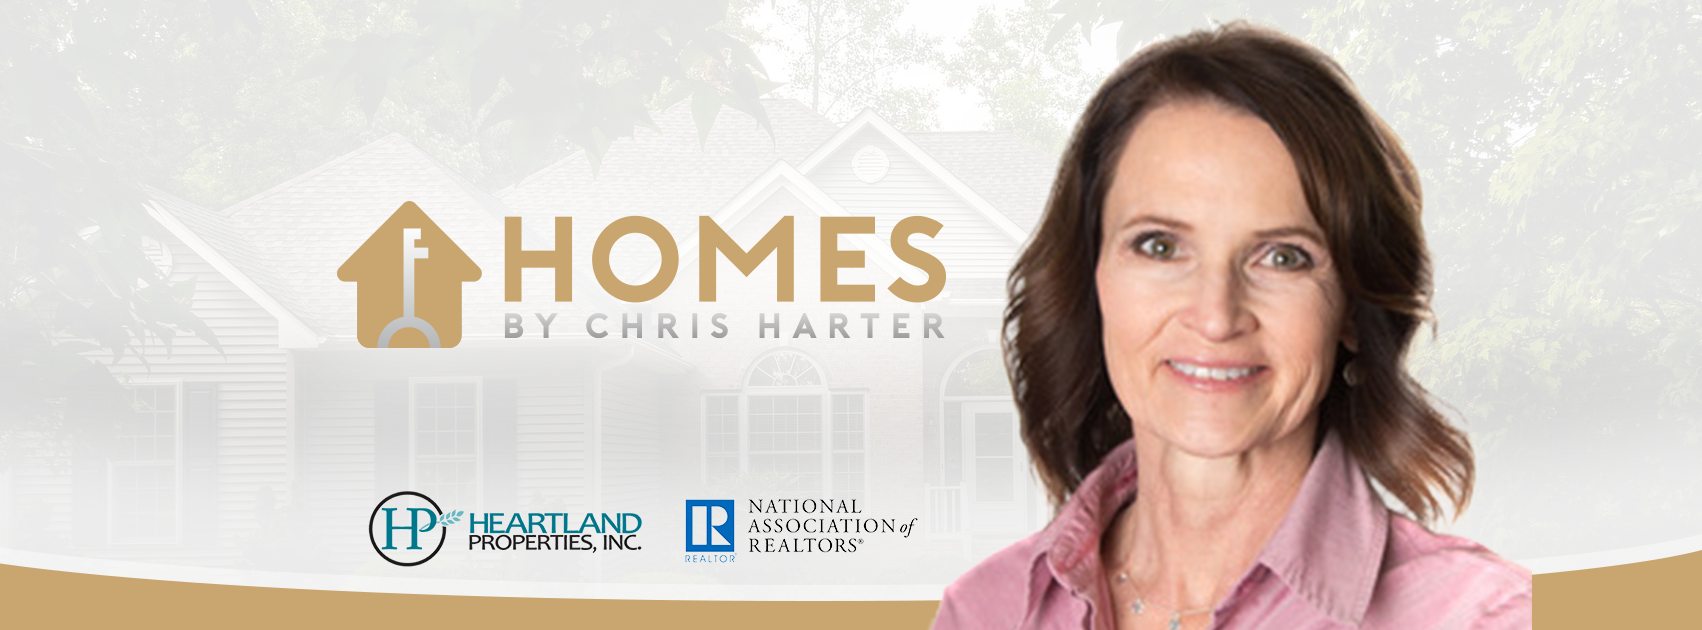 Homes By Chris Harter logo